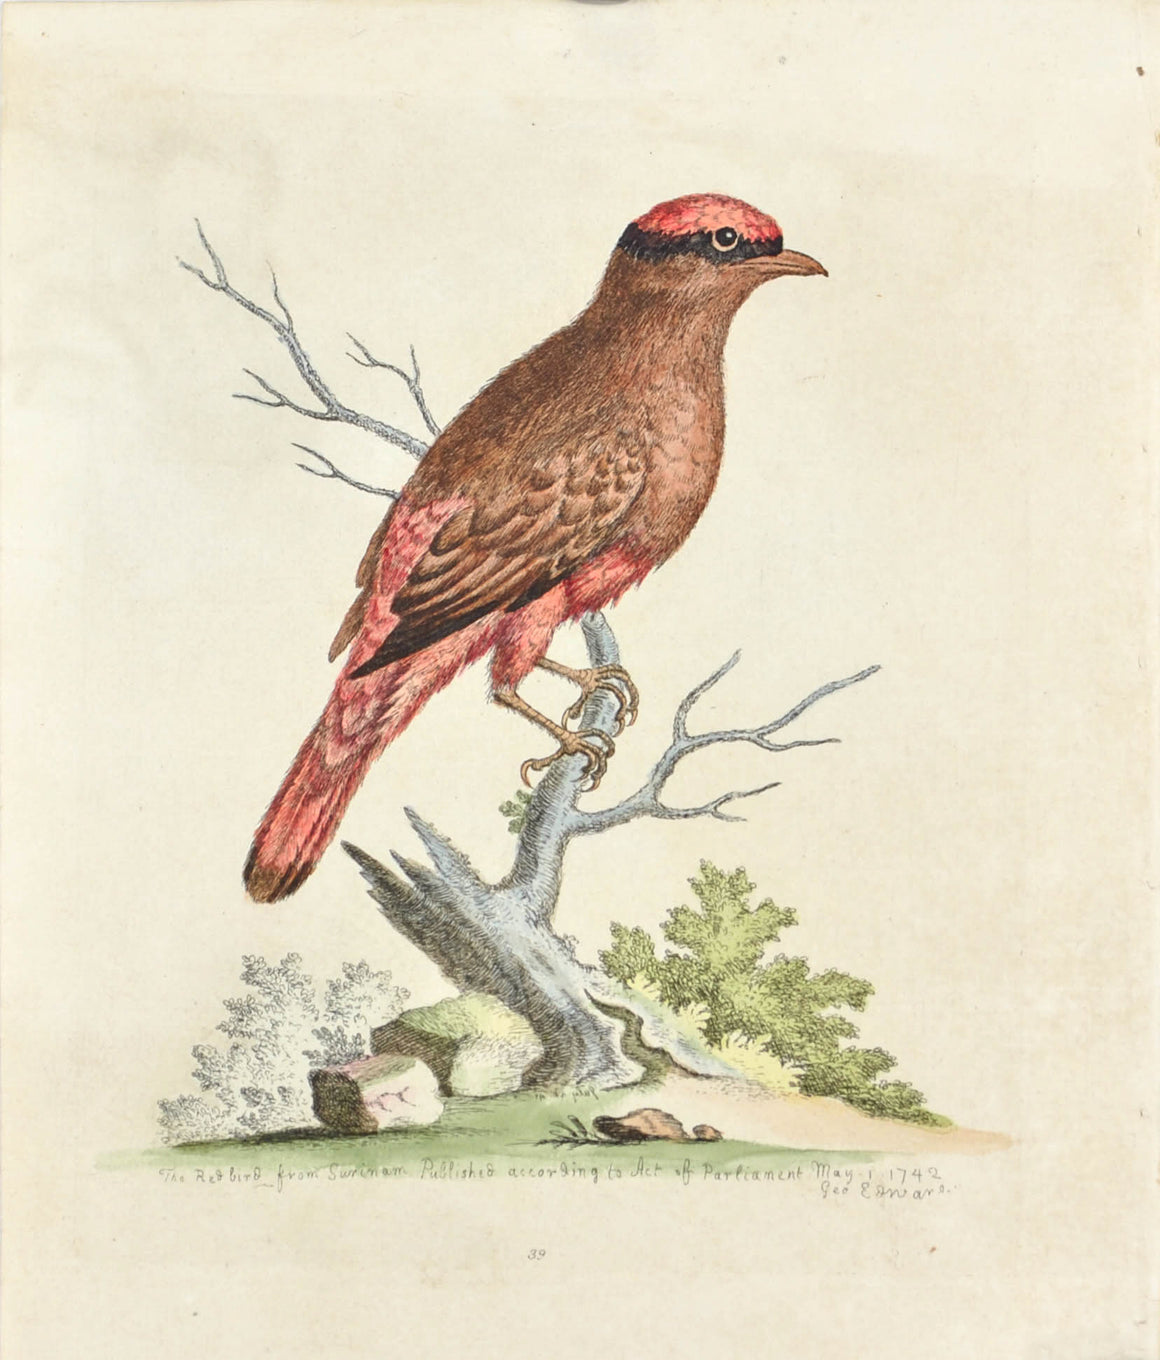 The Red Bird from Surinam by George Edwards c. 1743 Antique Bird Print